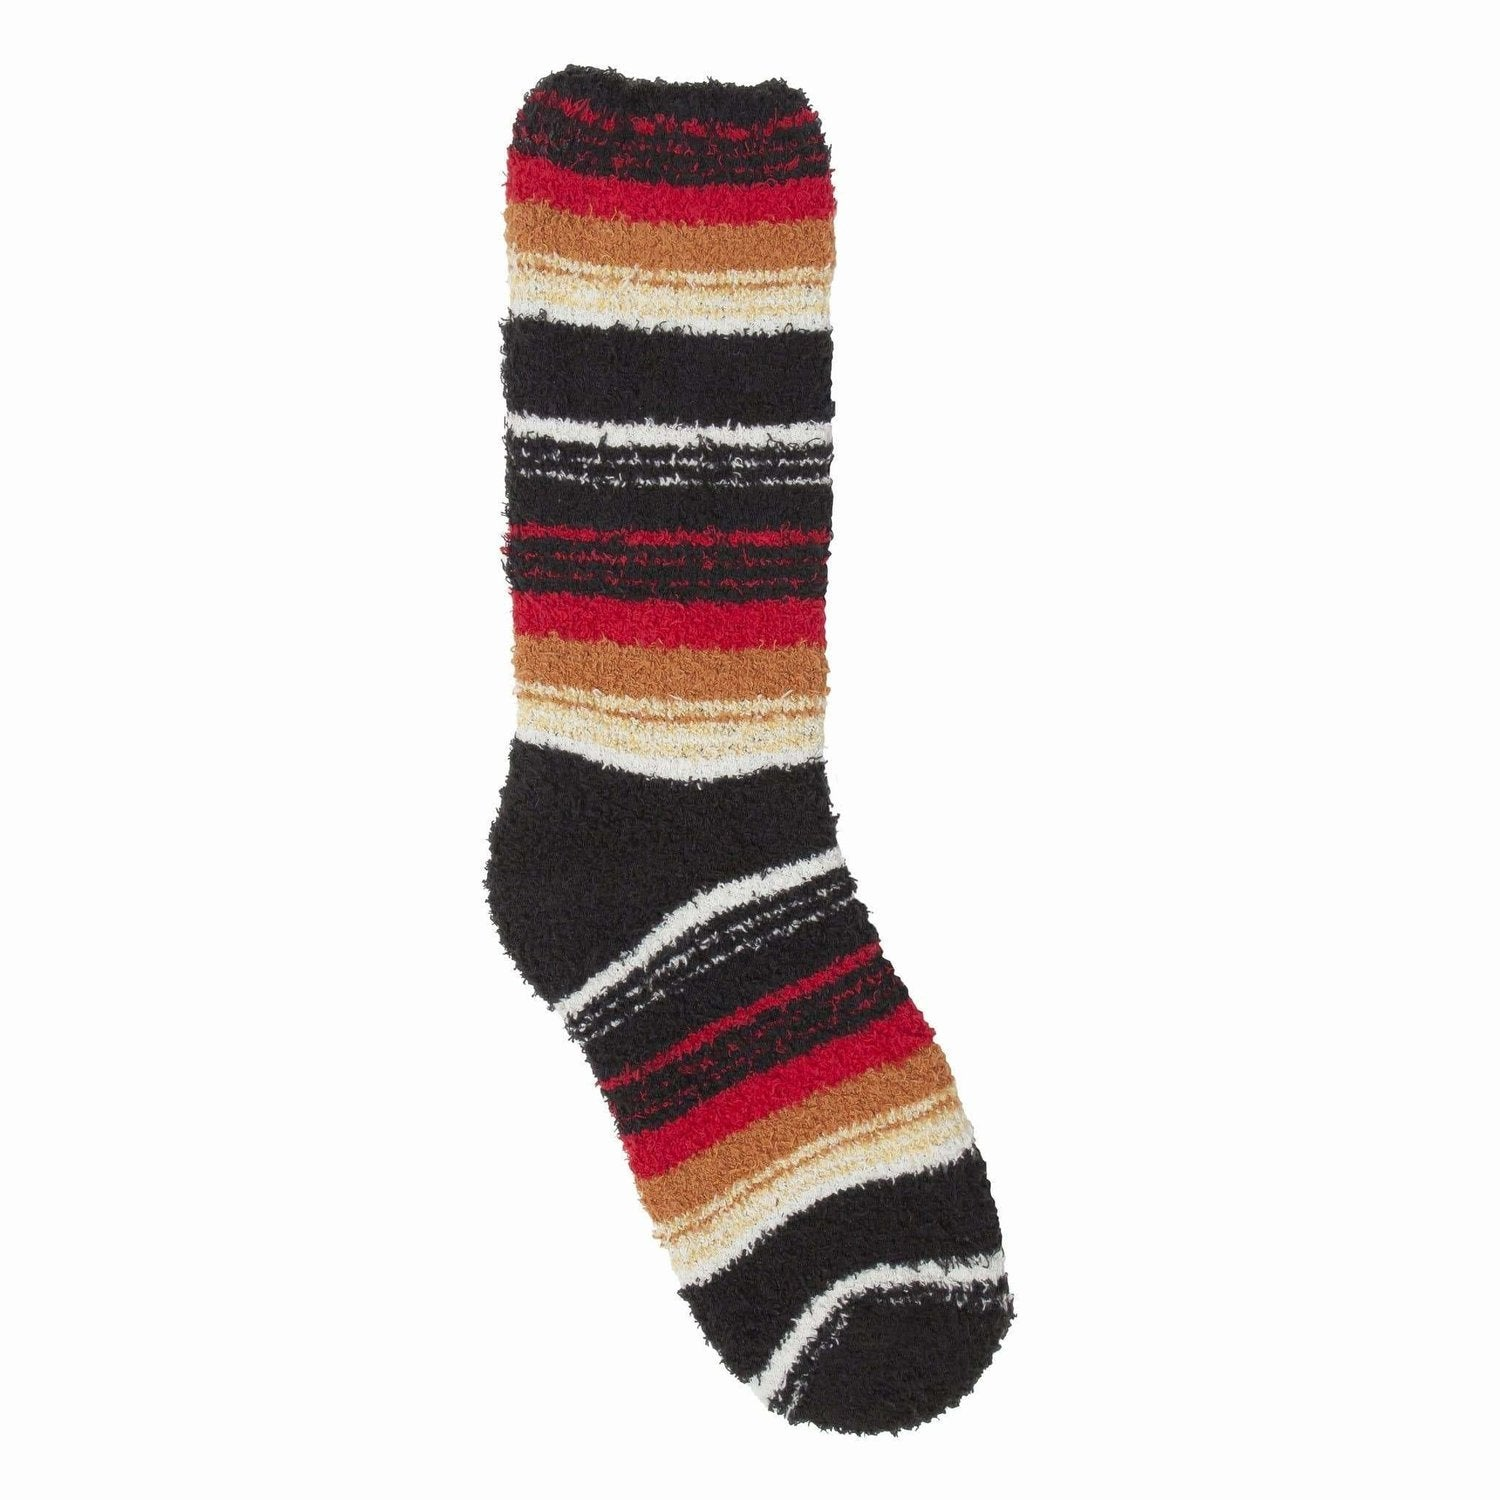 World's Softest - Winter Blanket Knit Pickin' Fireside Crew Socks | Women's - Knock Your Socks Off